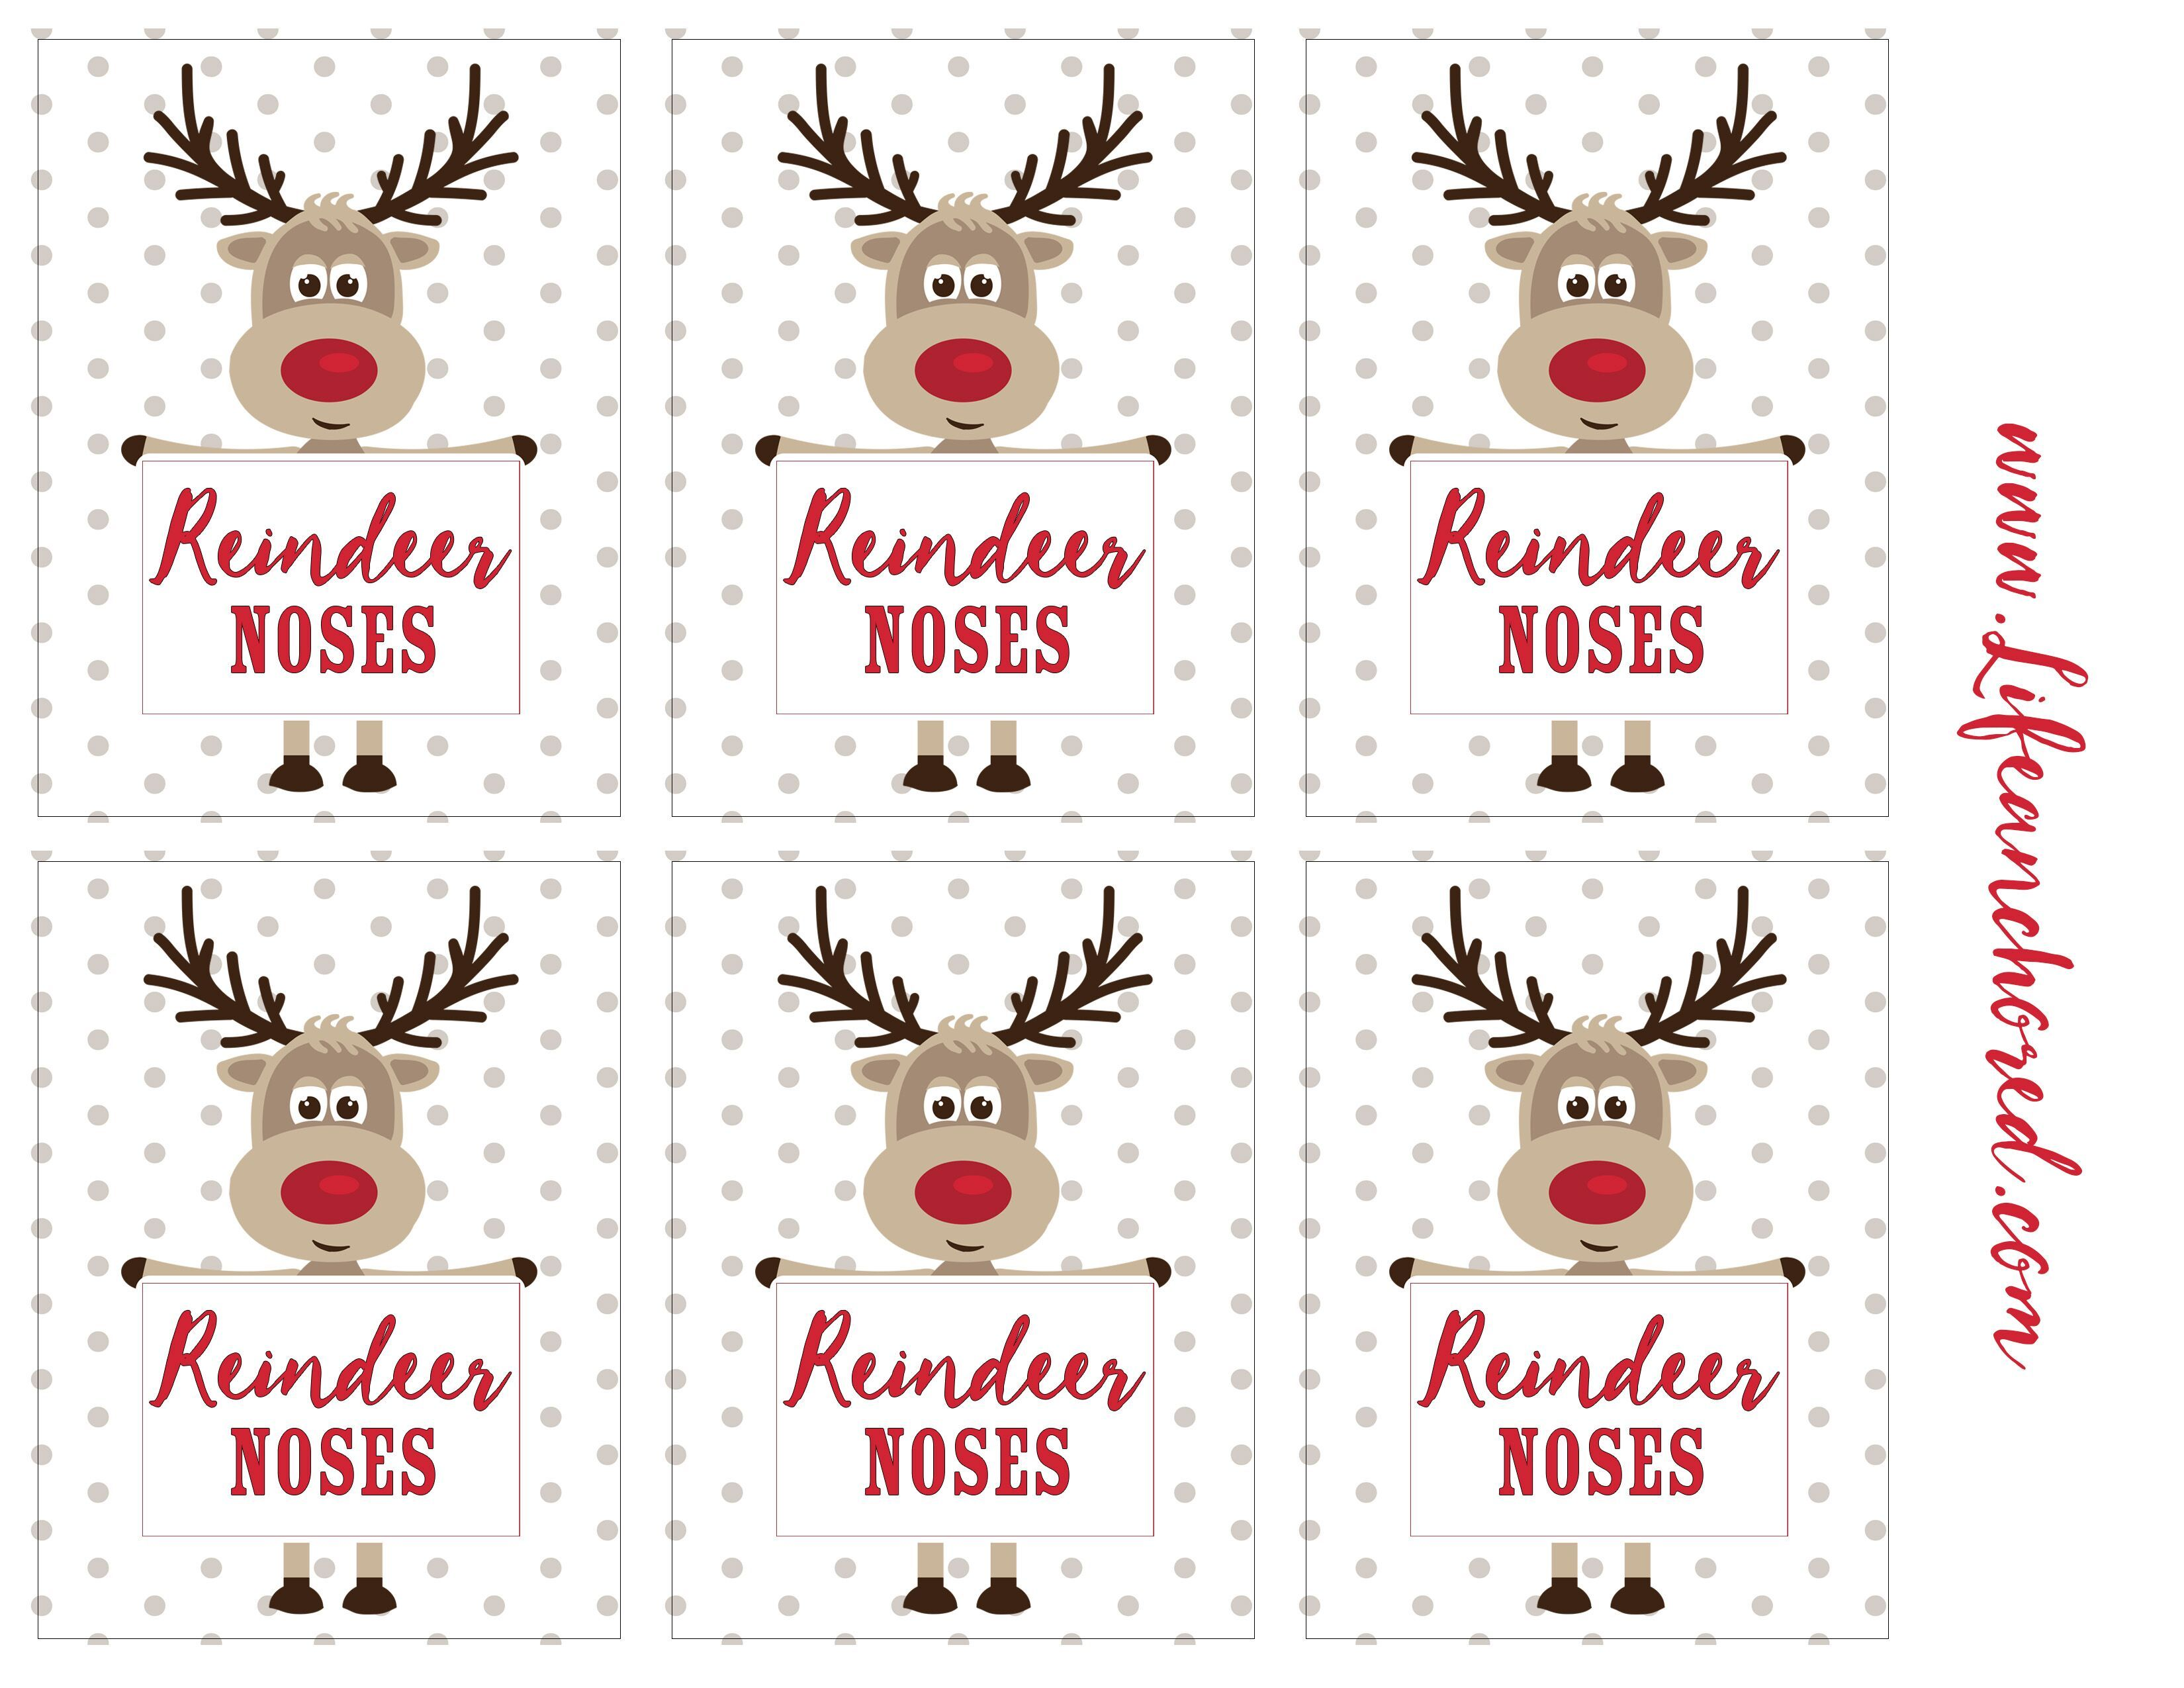 image about Reindeer Noses Printable titled Reindeer Noses Take care of Xmas Reindeer noses, No cost